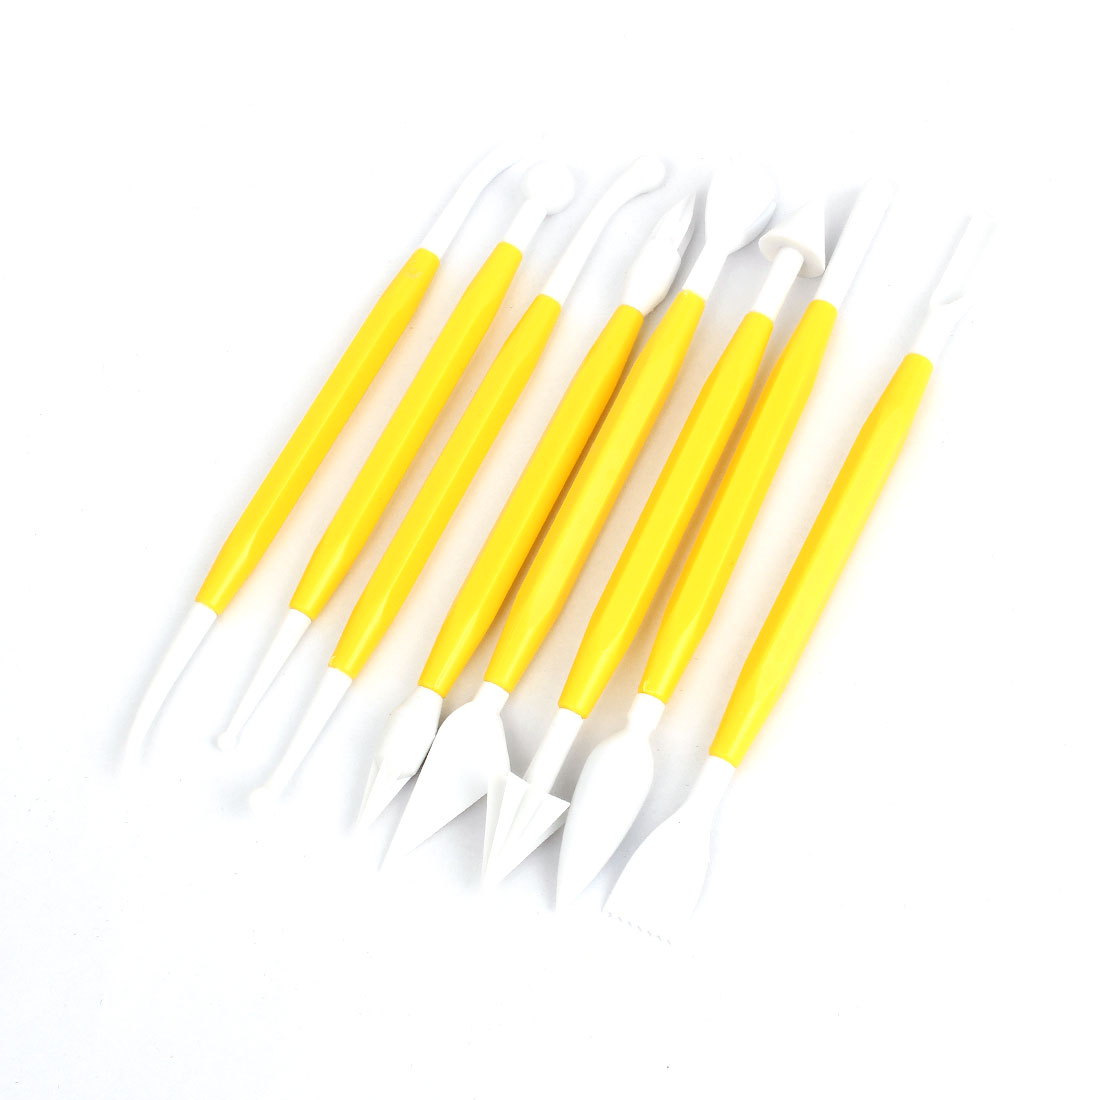 8 in 1 Flower Sugarcraft Fondant Cake Decorating Modelling Tools Yellow White